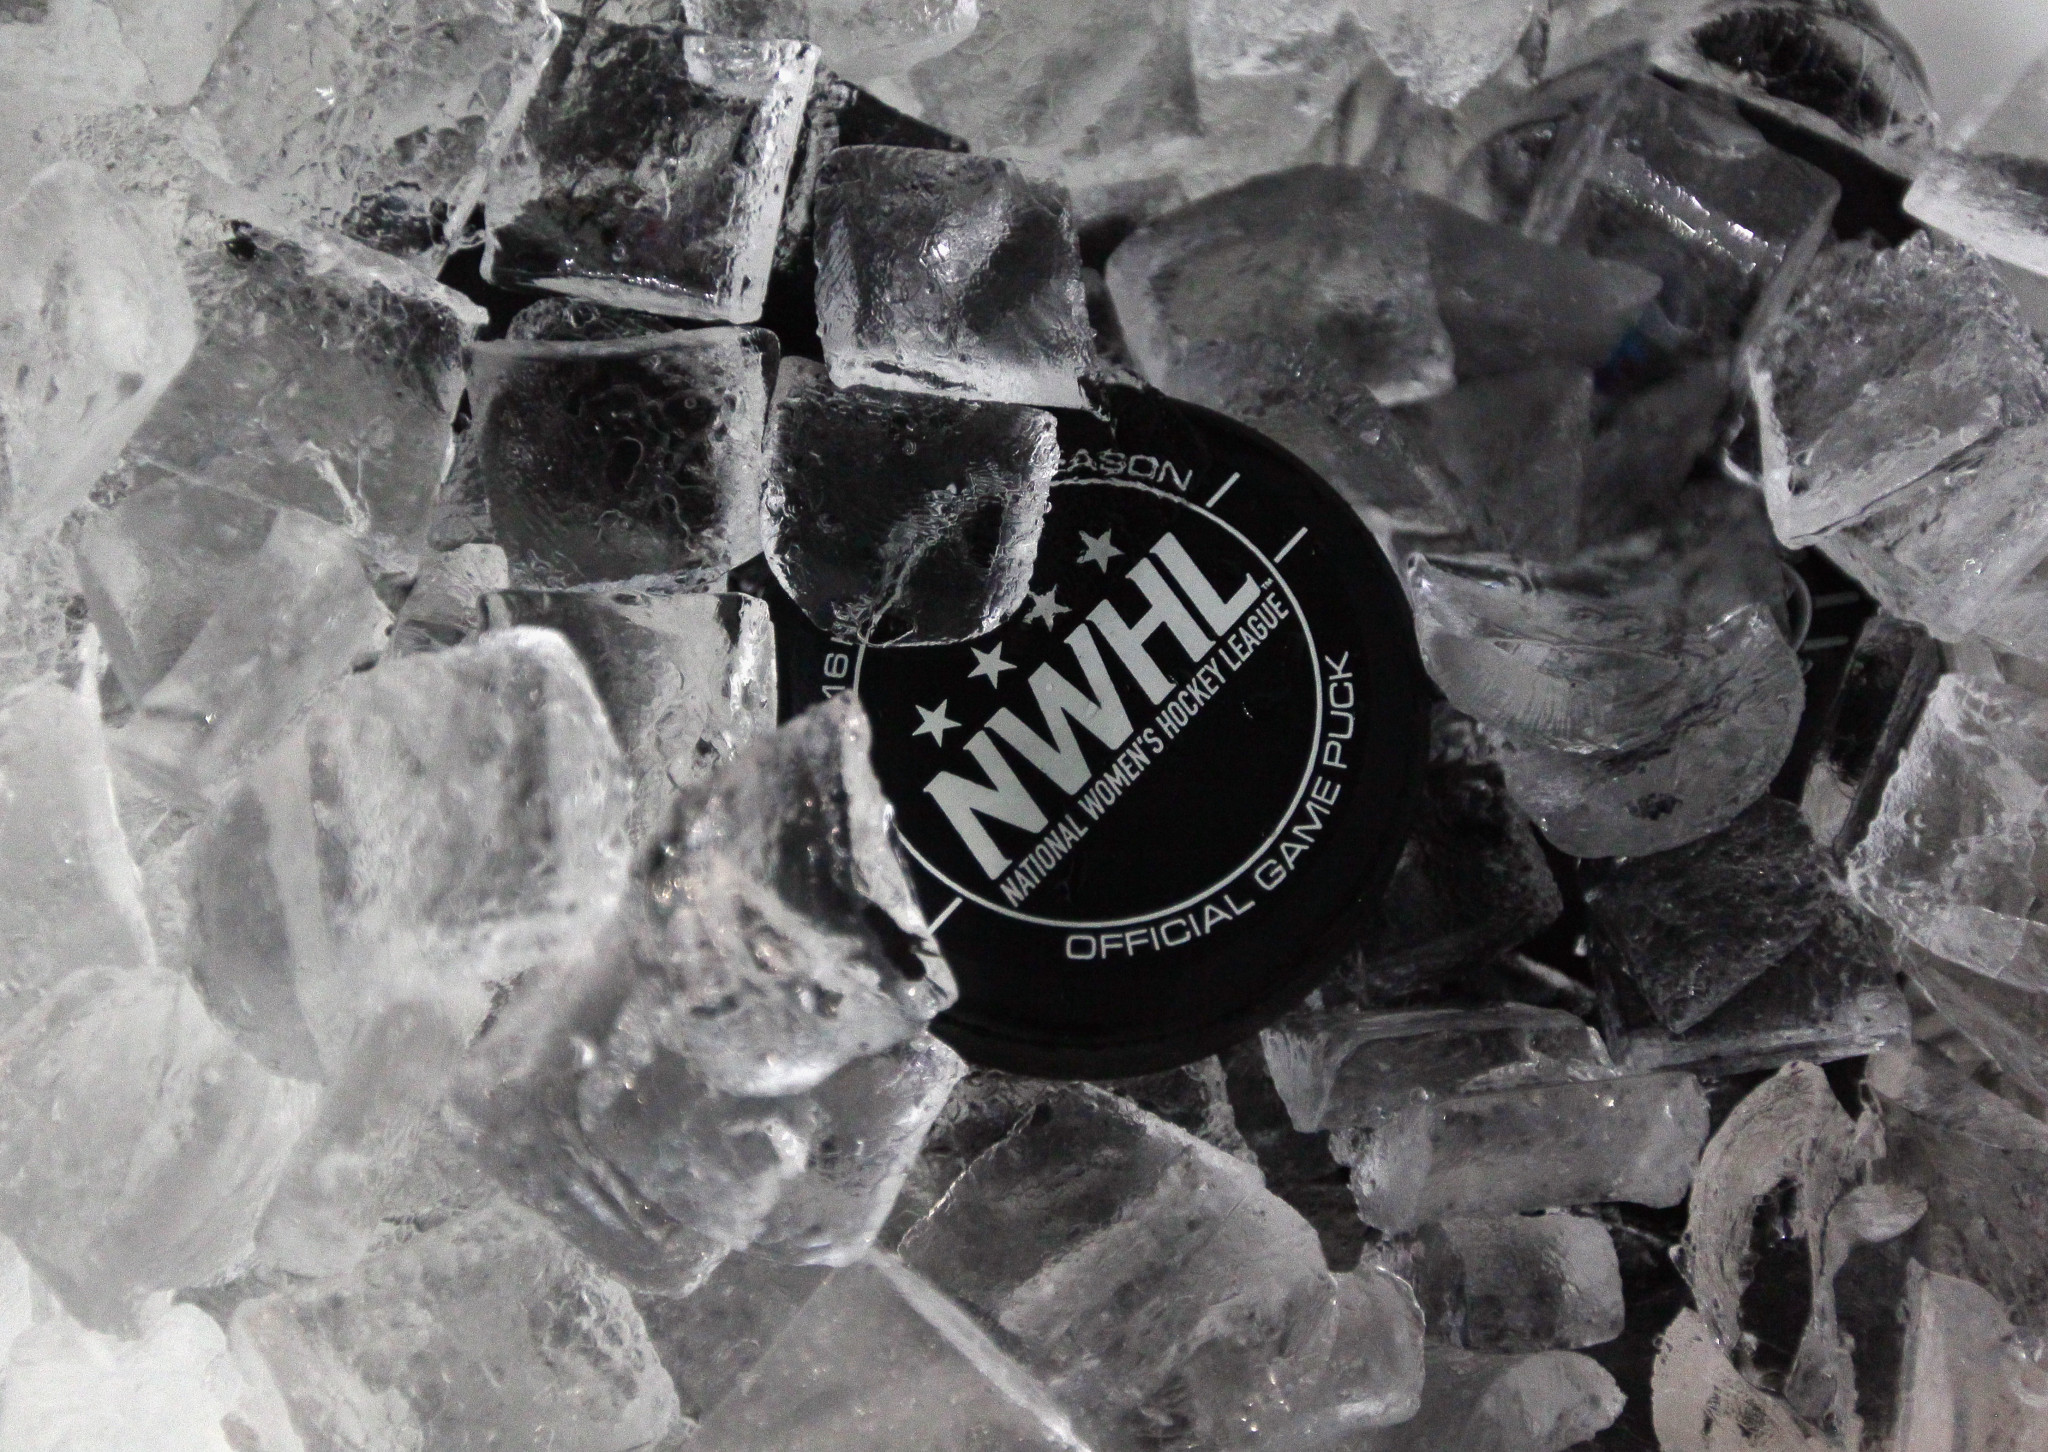 NWHL has name changed to Premier Hockey Federation